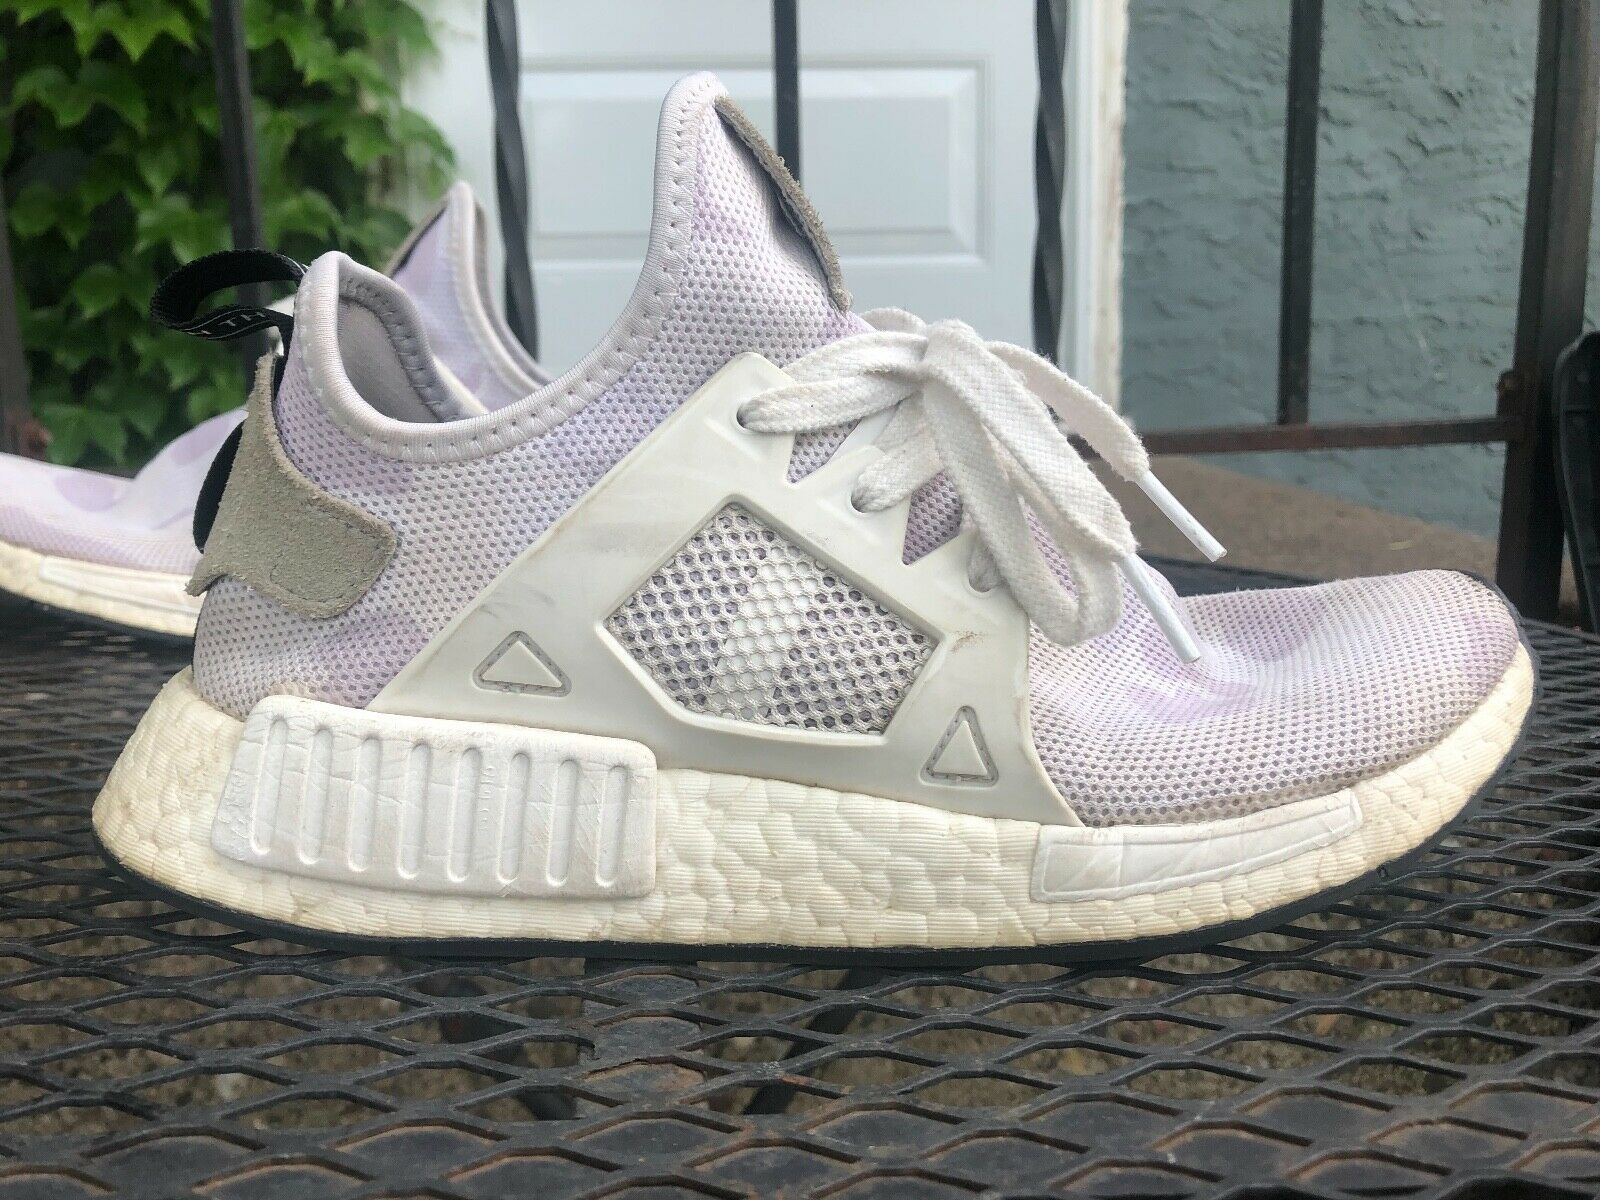 Adidas NMD XR1 Mens shoes Size 7 1 2 very nice condition white duck camo